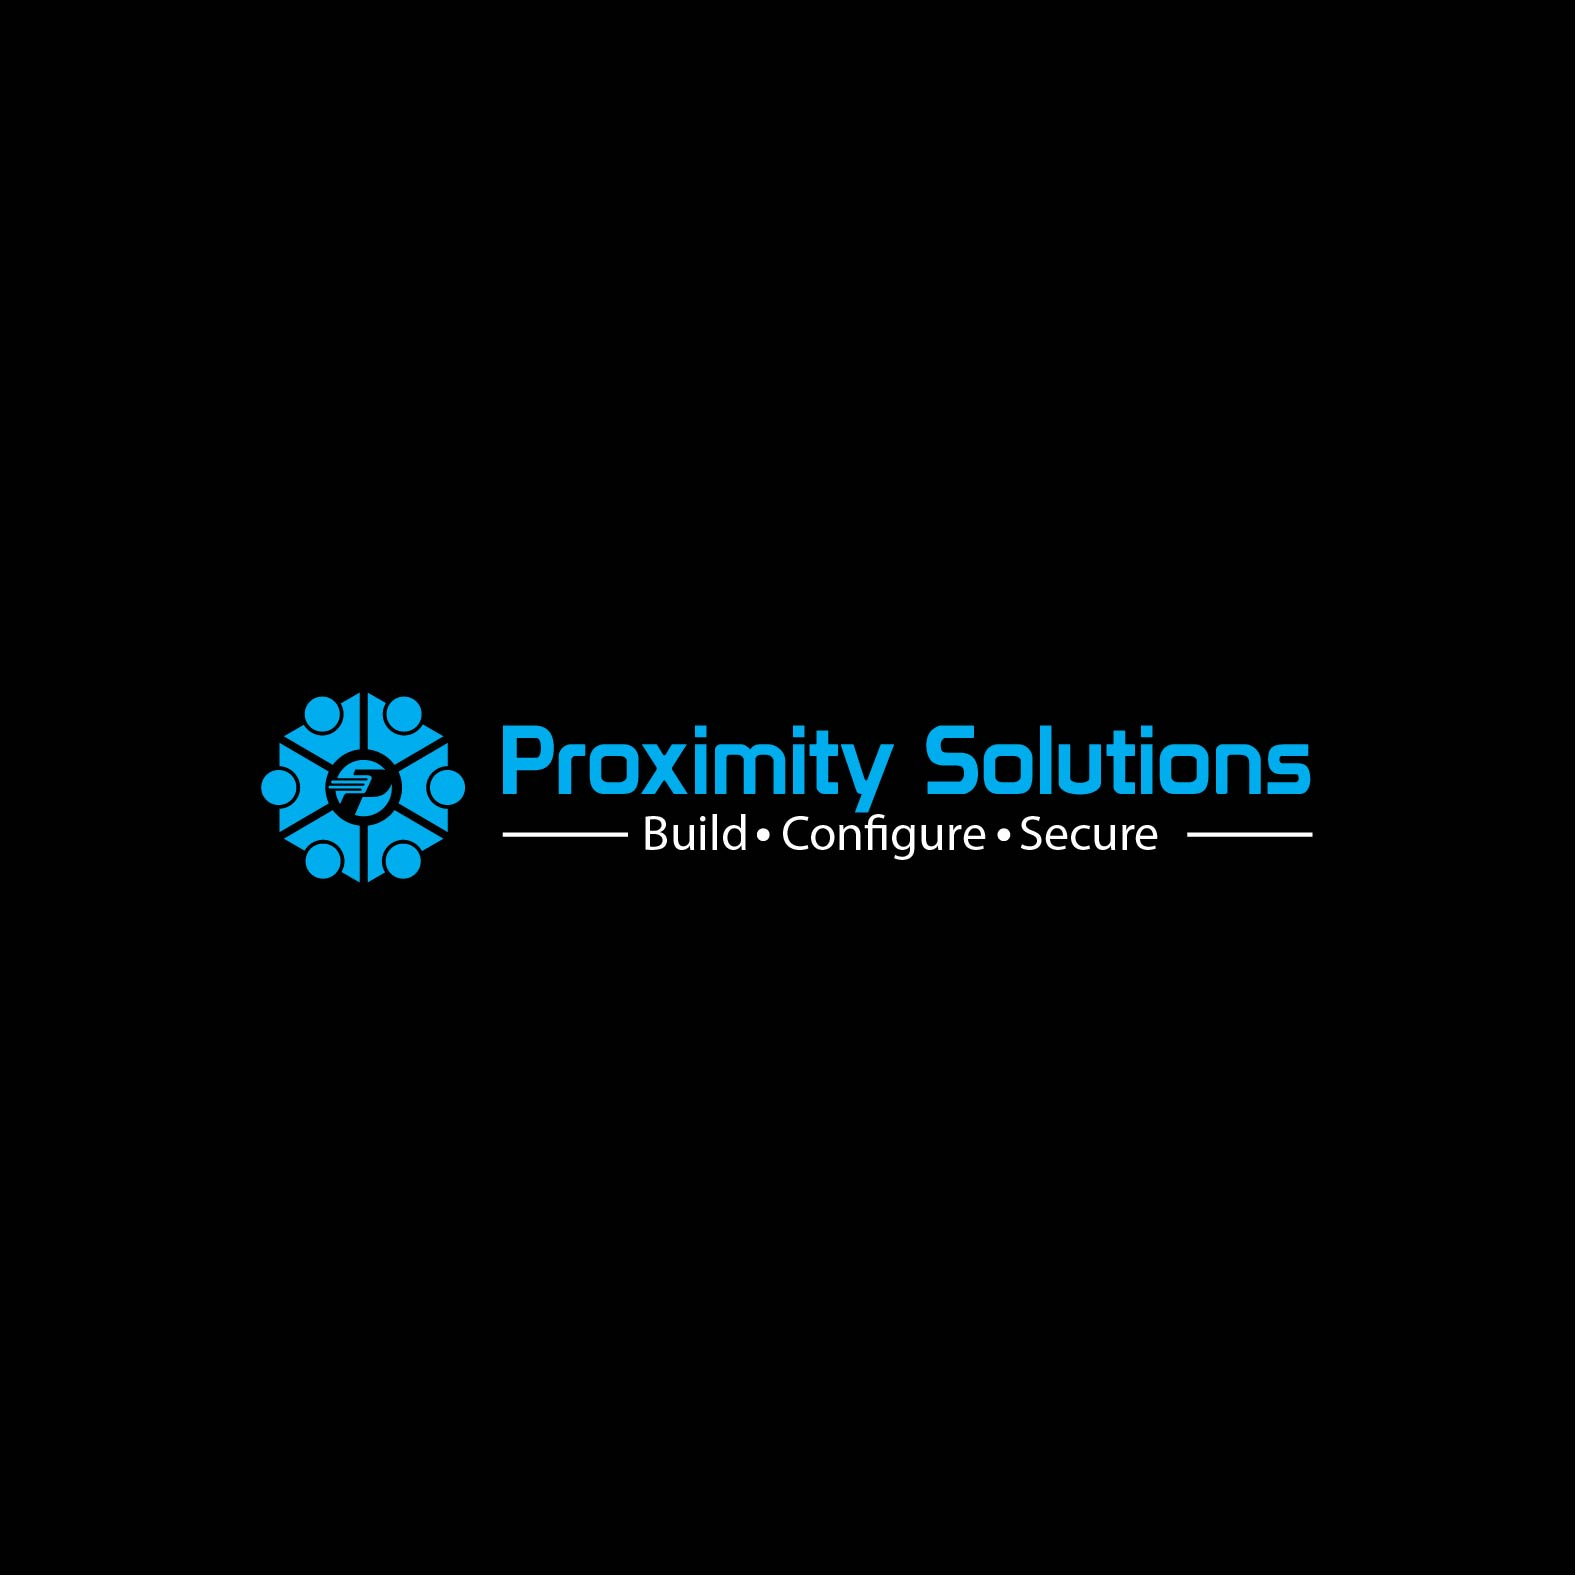 Logo Design by lagalag - Entry No. 116 in the Logo Design Contest New Logo Design for Proximity Solutions.